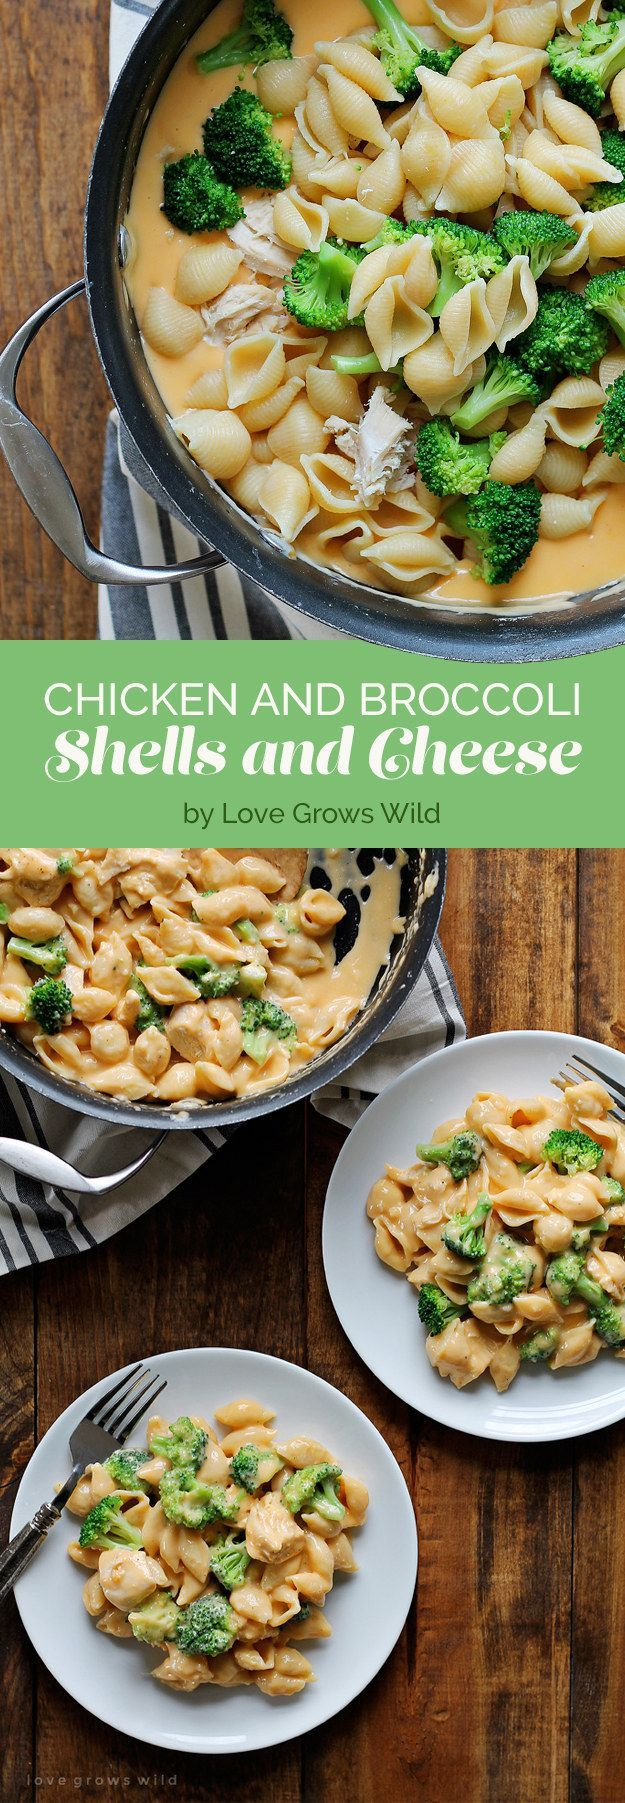 Chicken and Broccoli Shells and Cheese #chickenbreastrecipeseasy